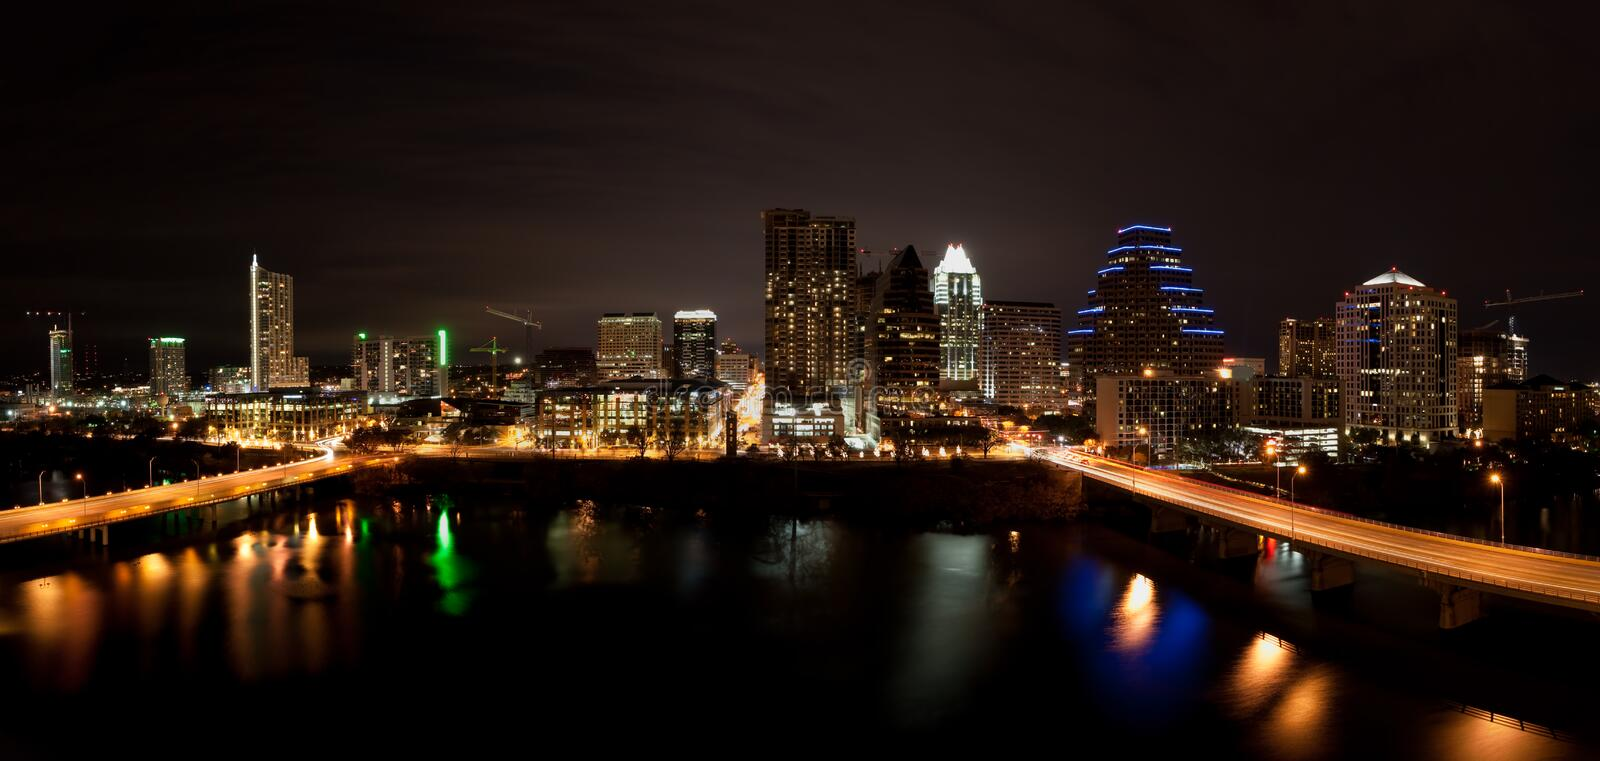 Downtown Austin Texas Cityscape at Night royalty free stock images